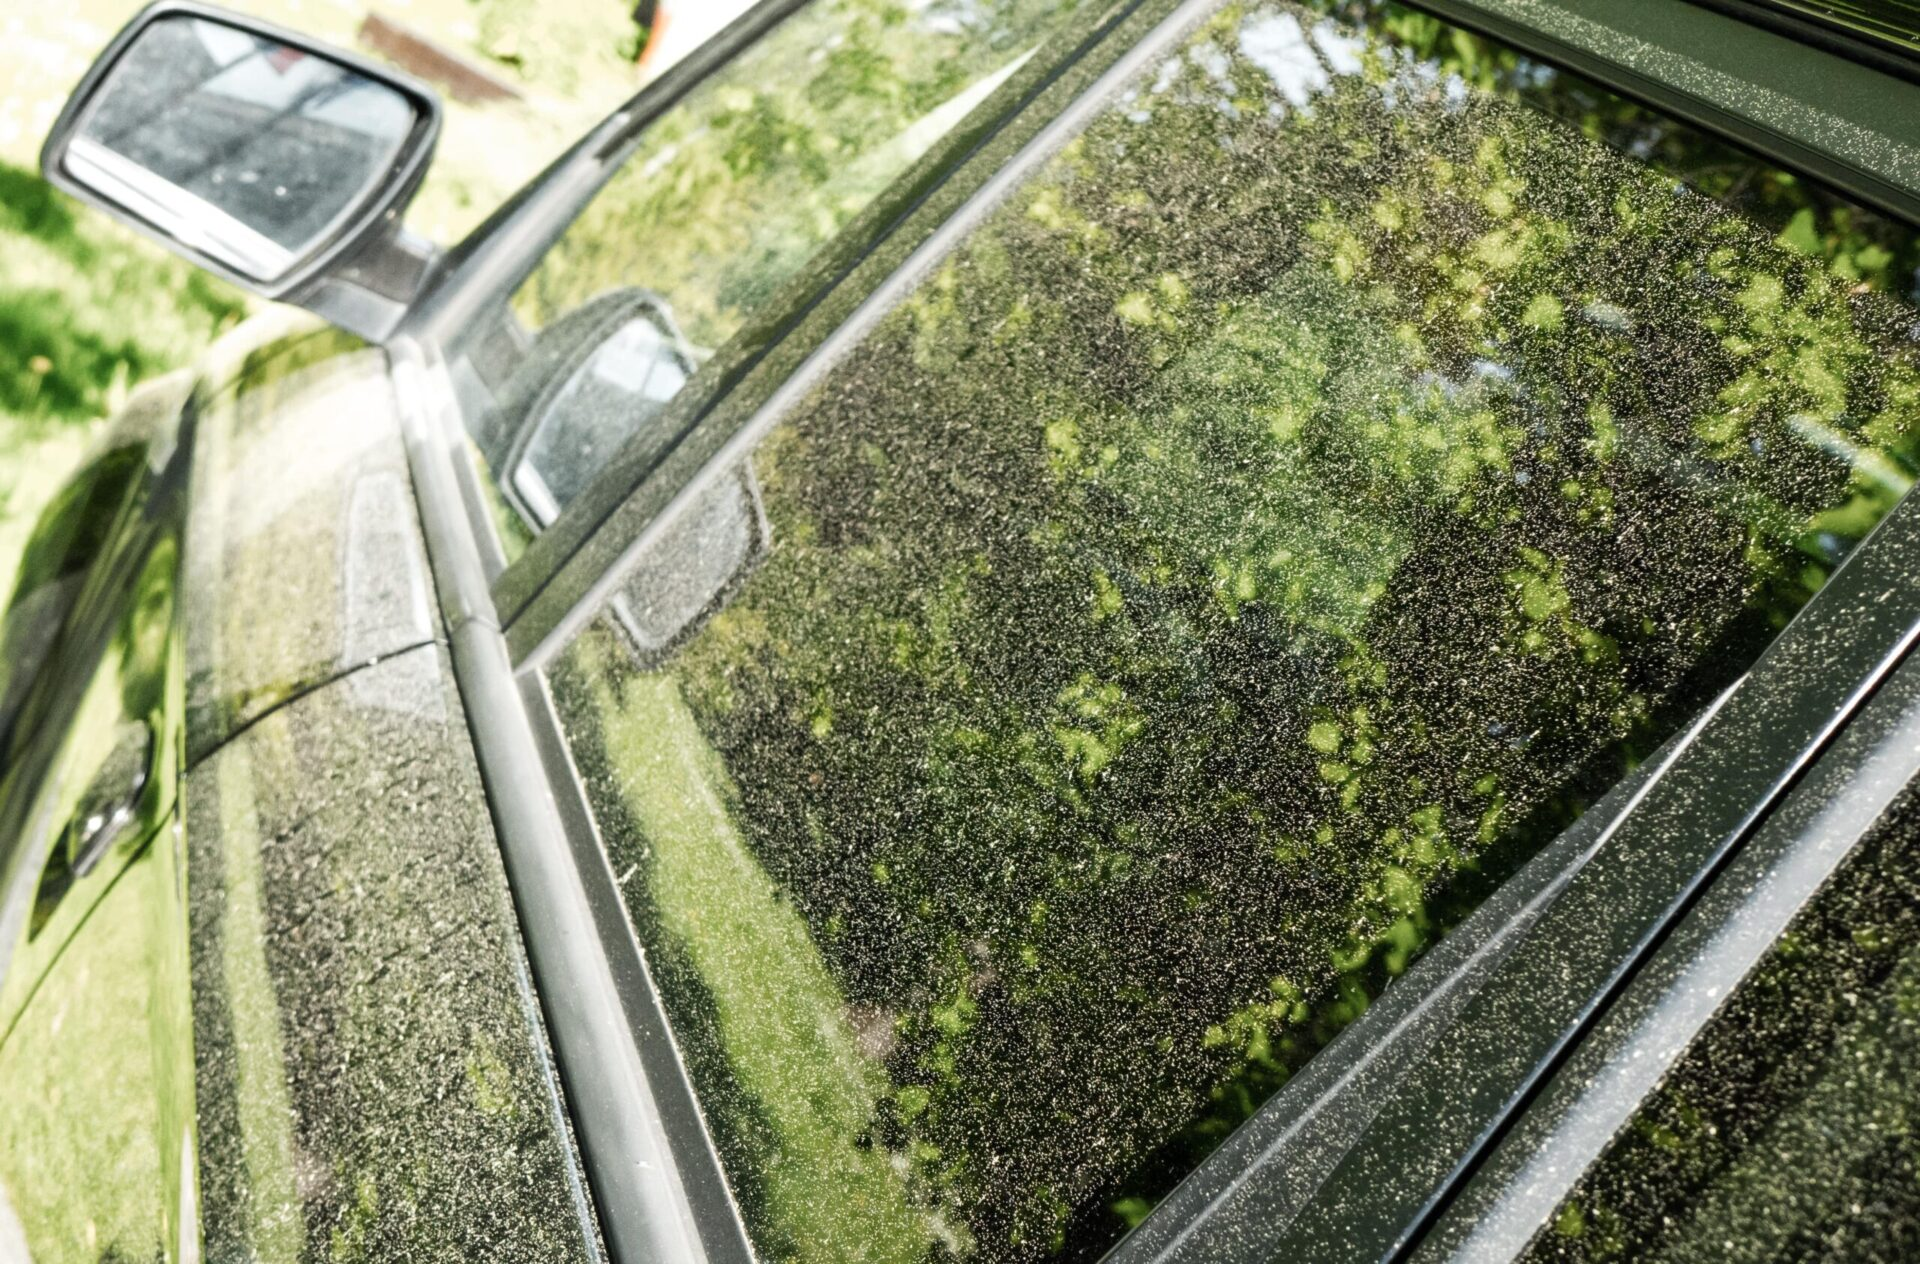 pollen on the surface of a black car that looks green because of how much pollen is on the car. It needs a car wash.